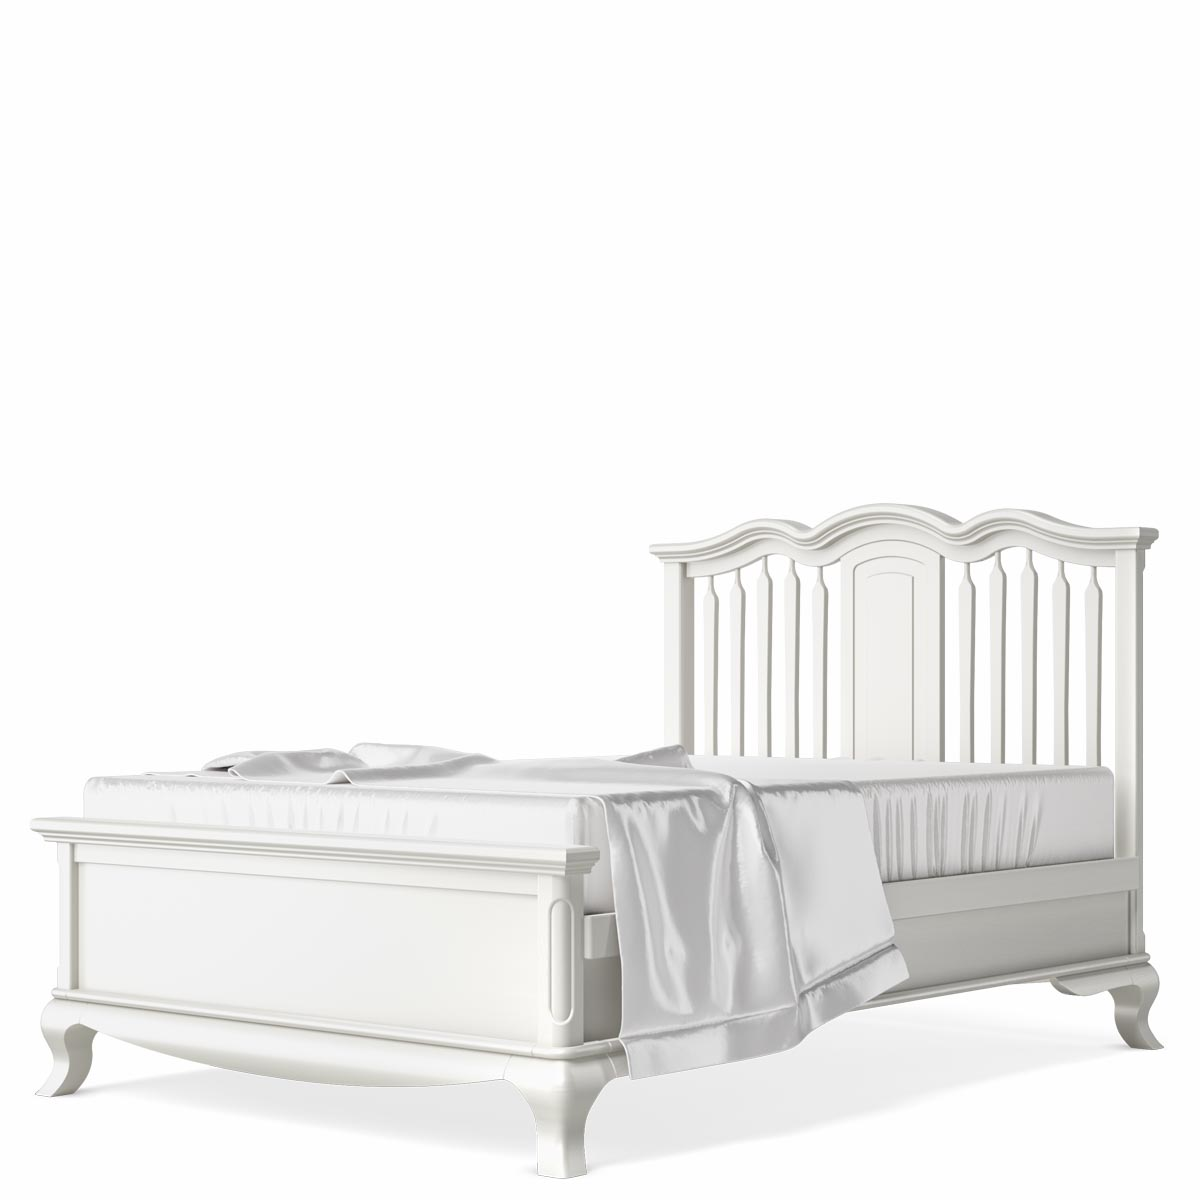 Romina Furniture Cleopatra Full Bed